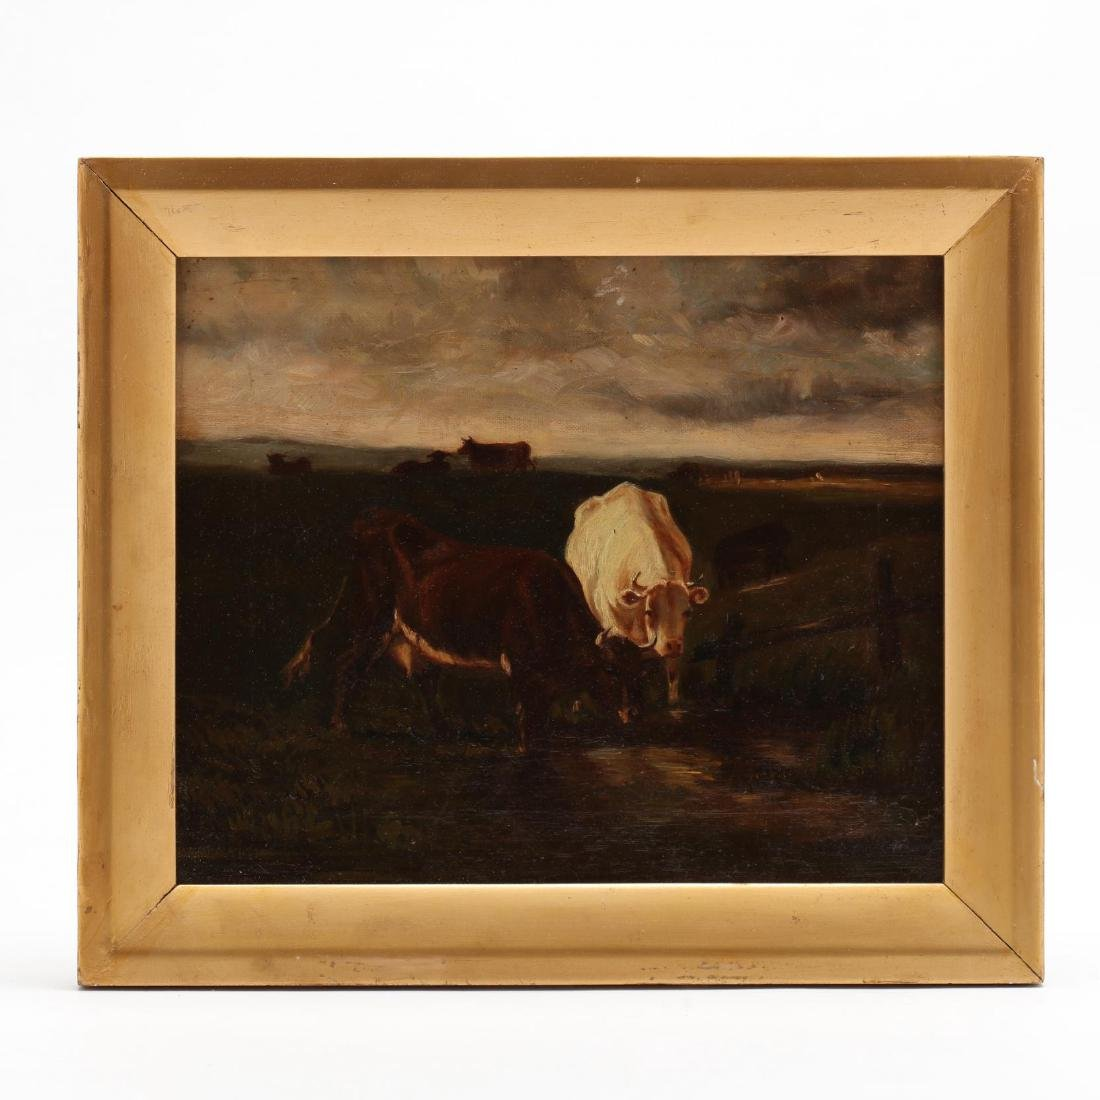 Antique Painting of Cows Watering